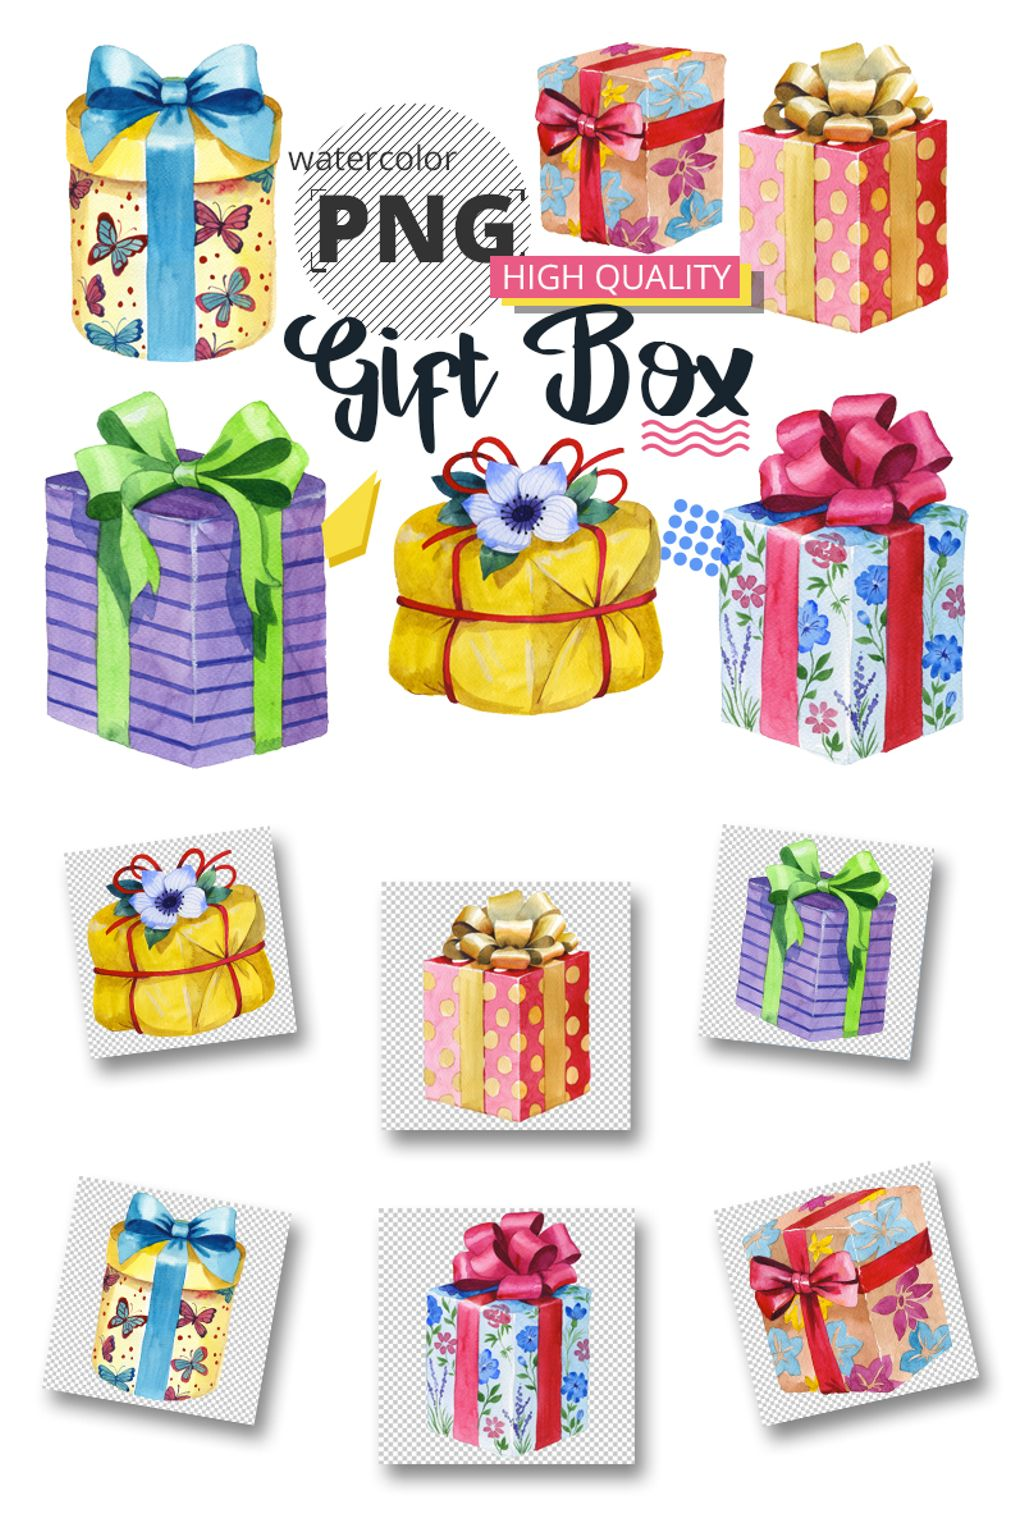 Gift boxes watercolor png set illustration 65913 gift boxes watercolor png set illustration negle Image collections